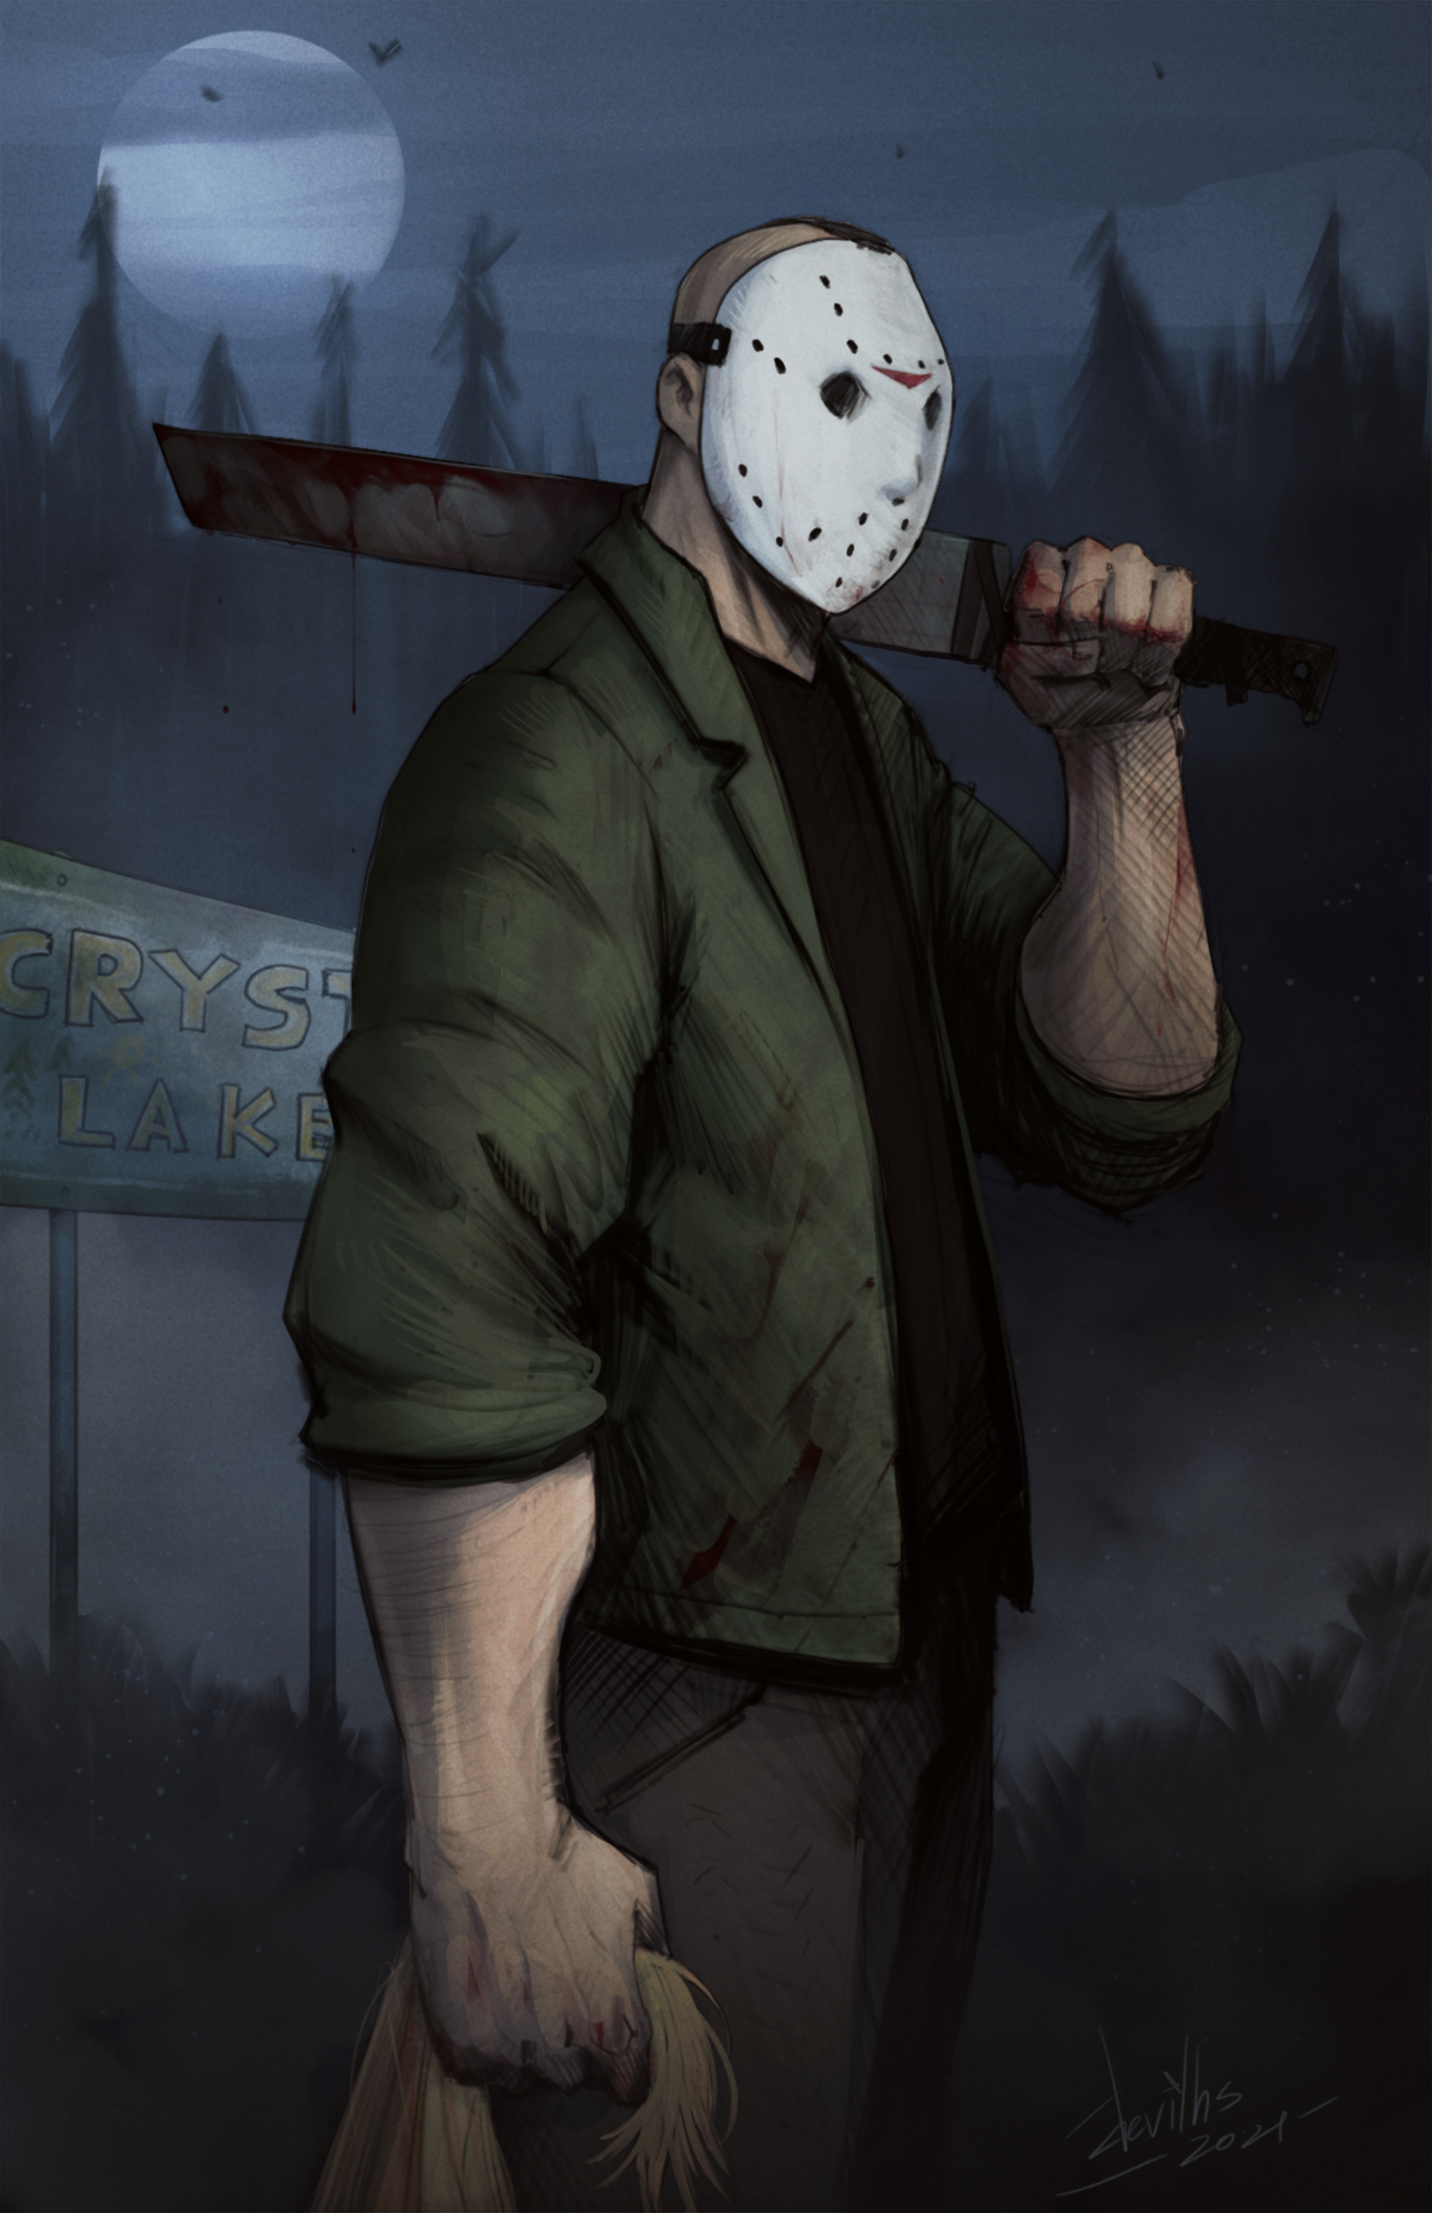 Friday, The 13th